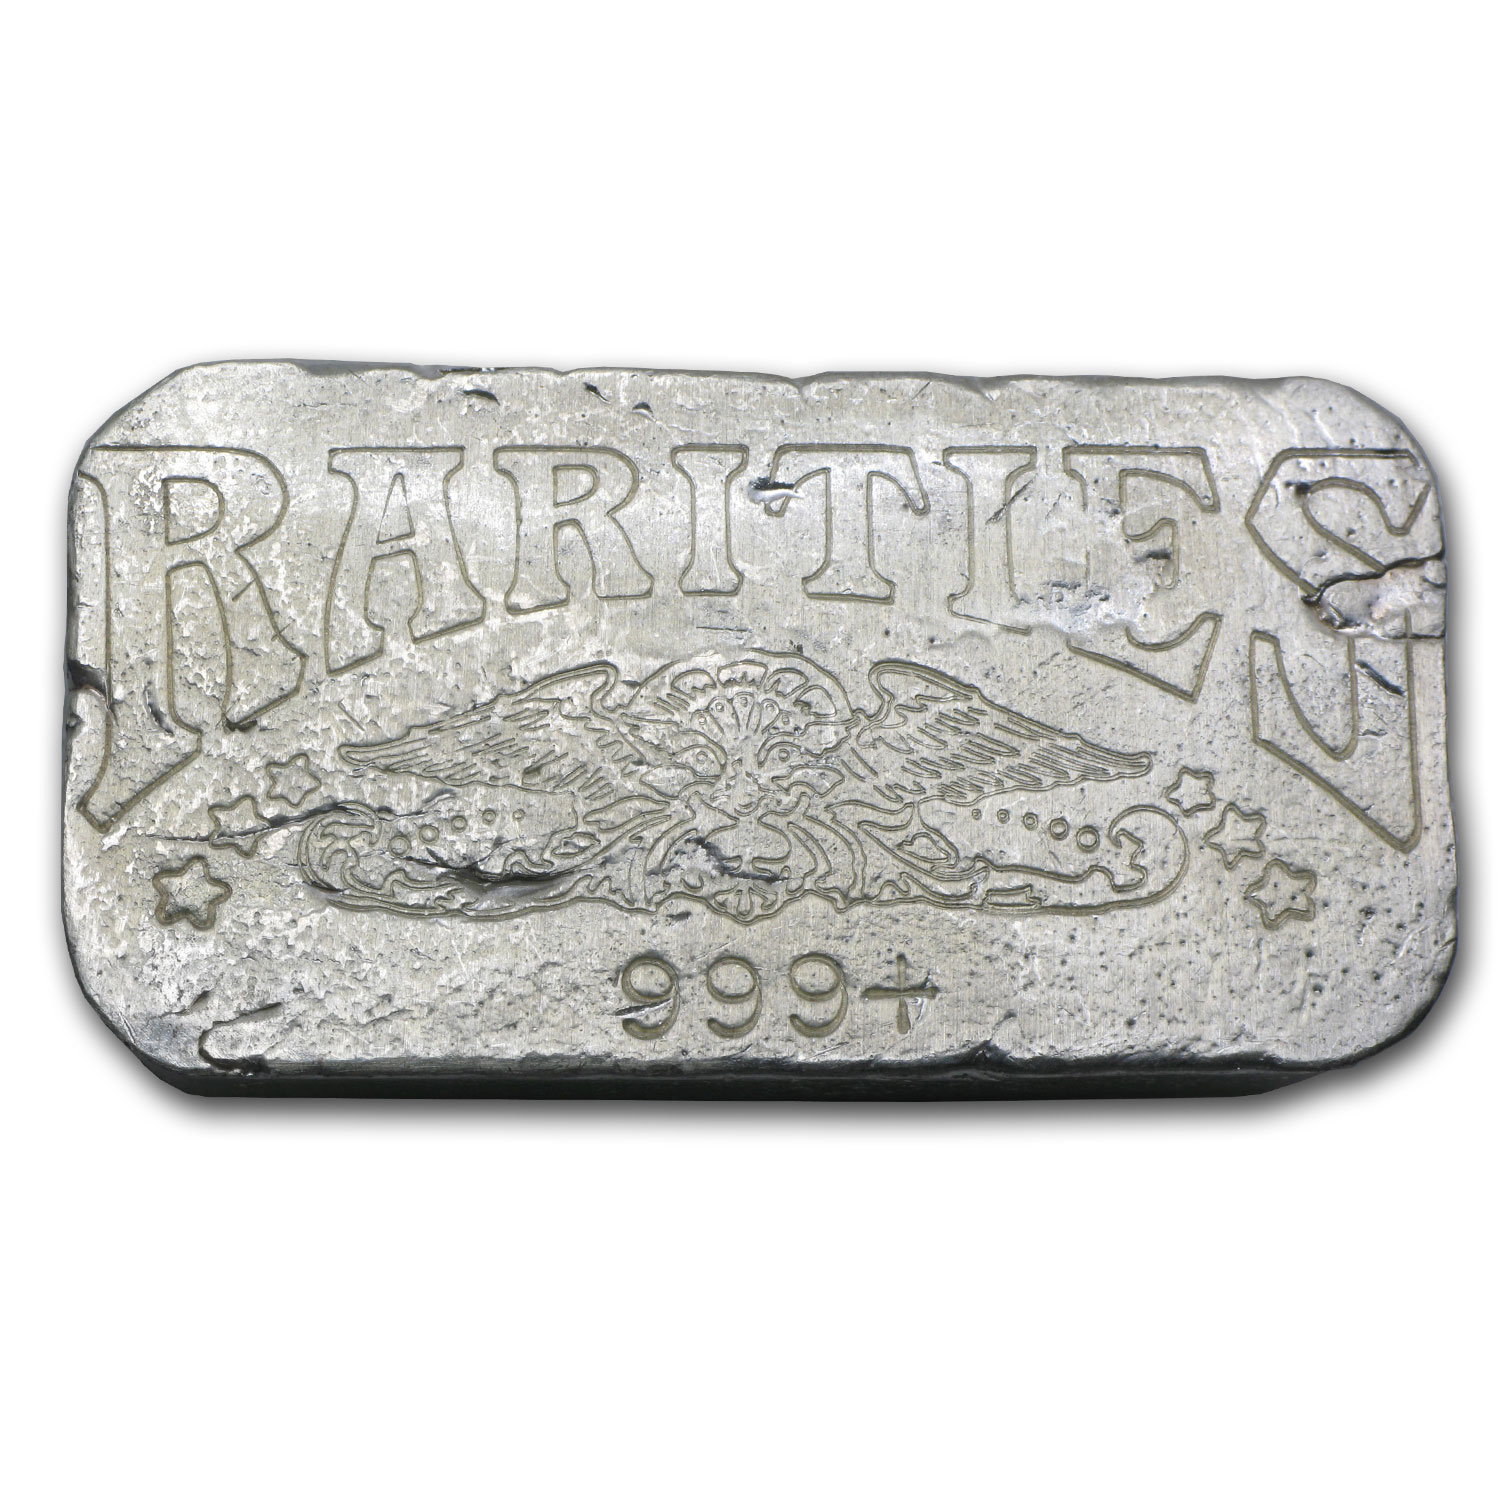 10 oz Silver Bars - Rarities Mint Cast Ingot